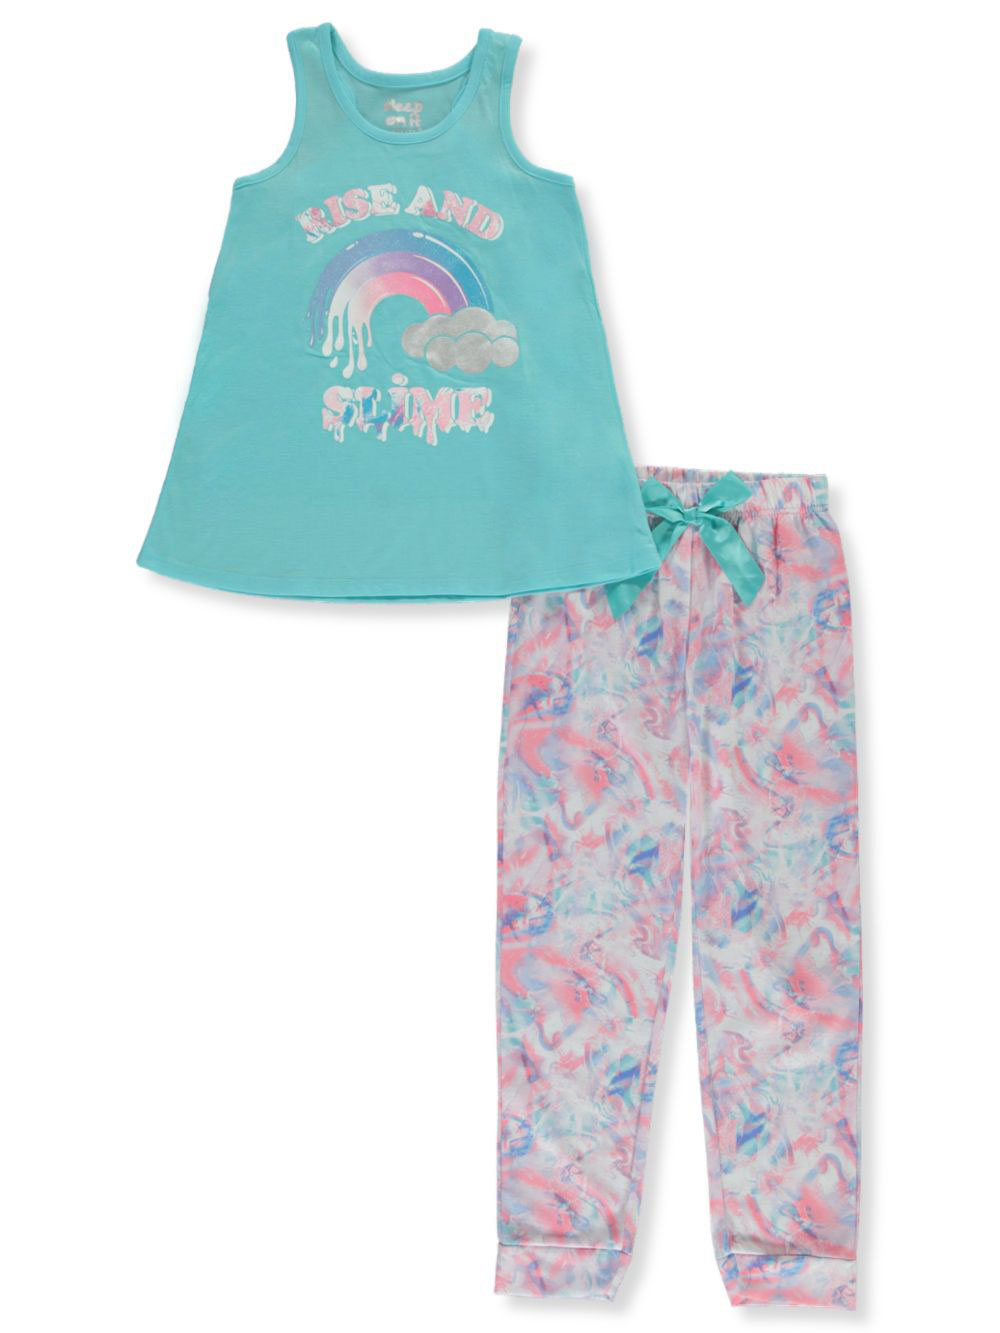 Girls Aqua Pajamas